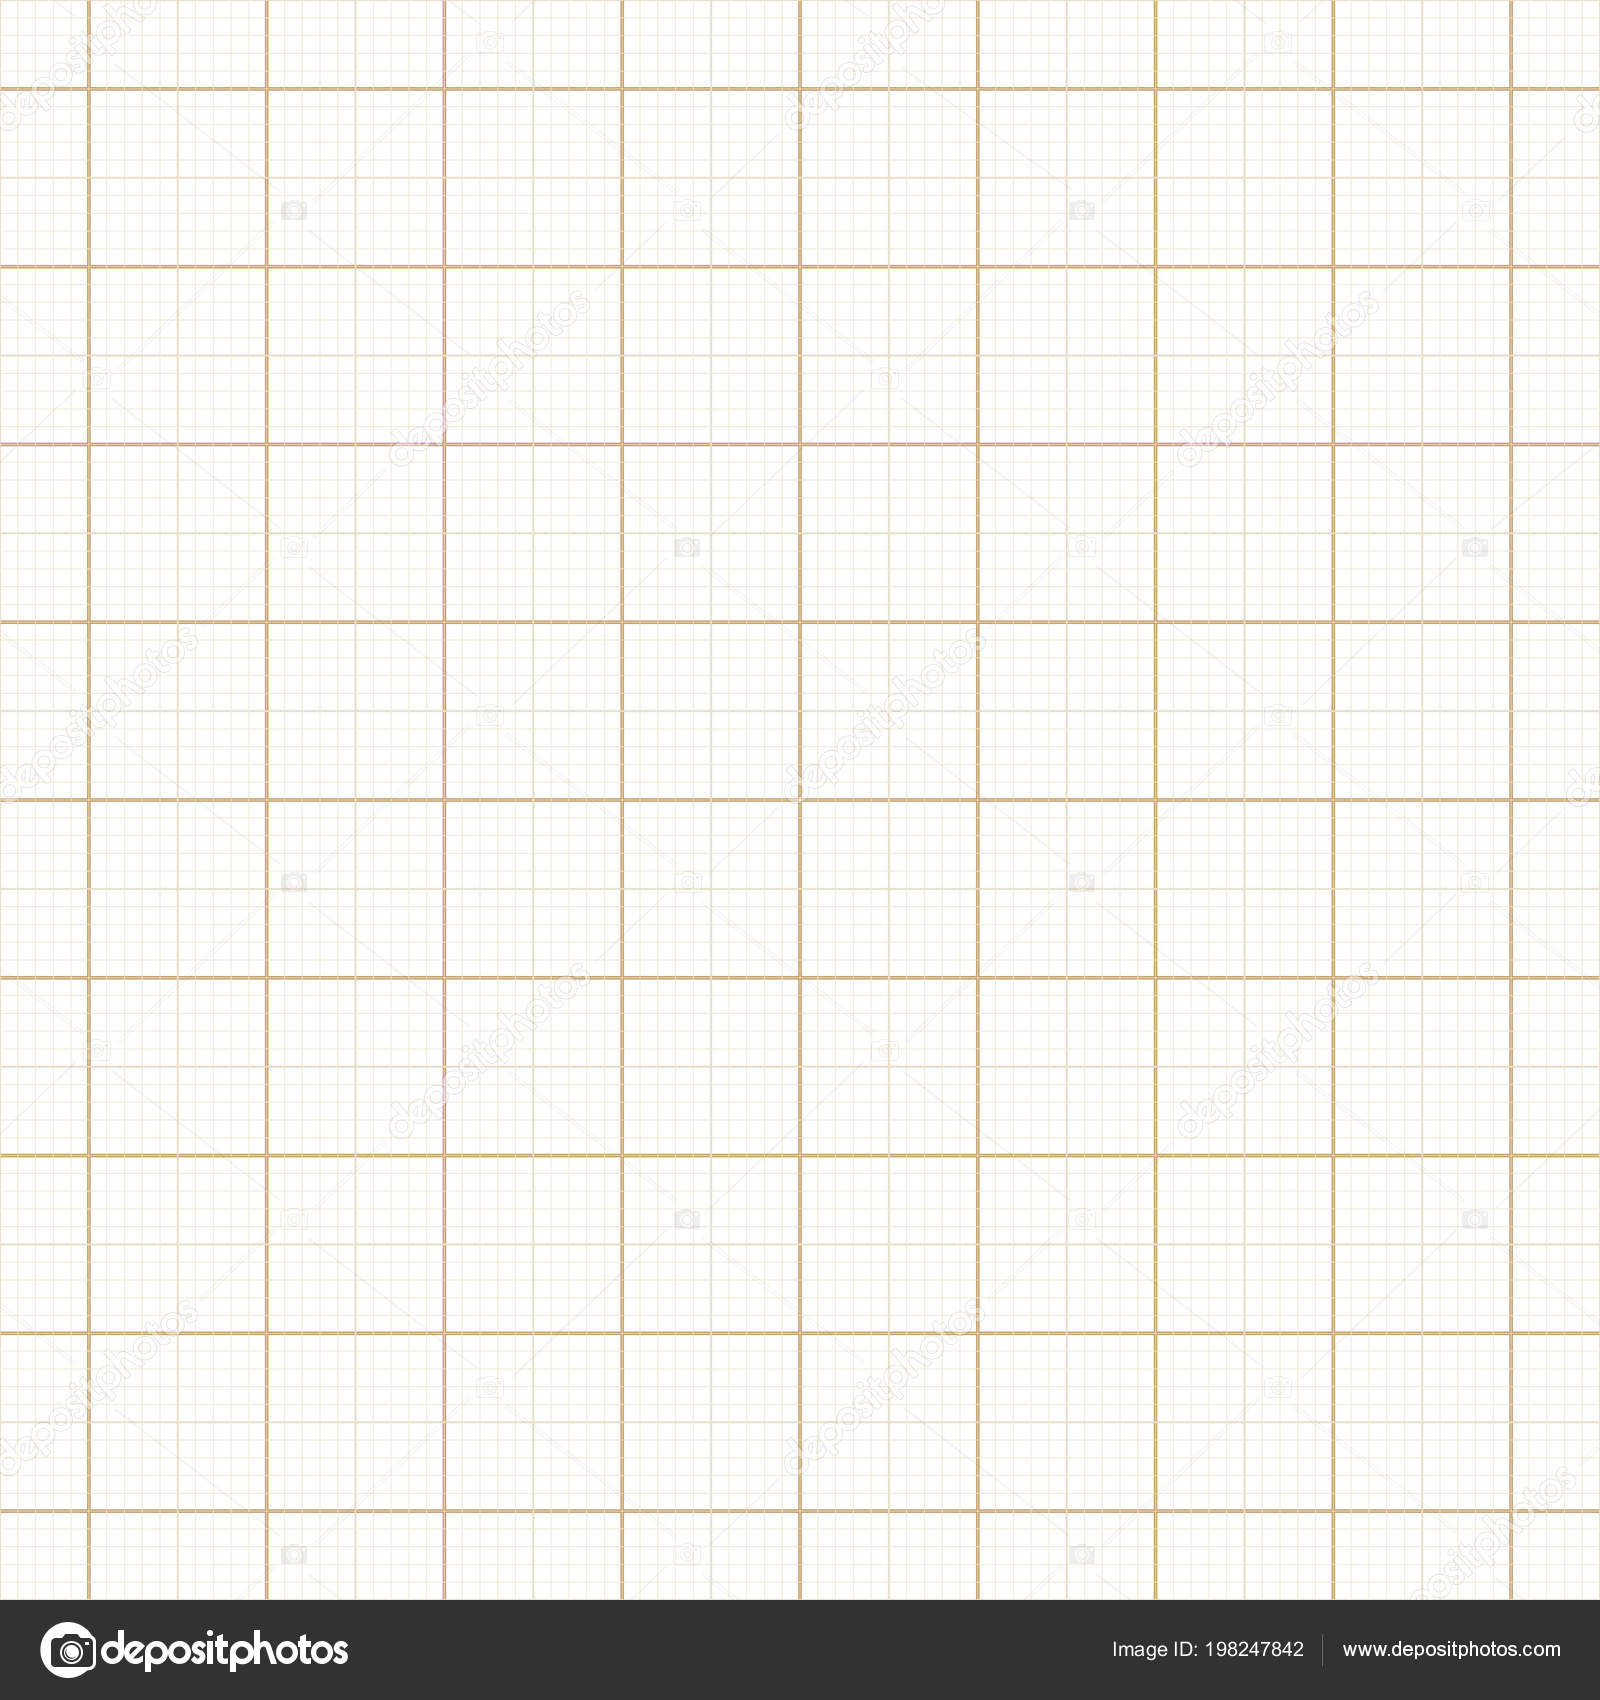 yellow architect graph paper repeat vector grid stock vector